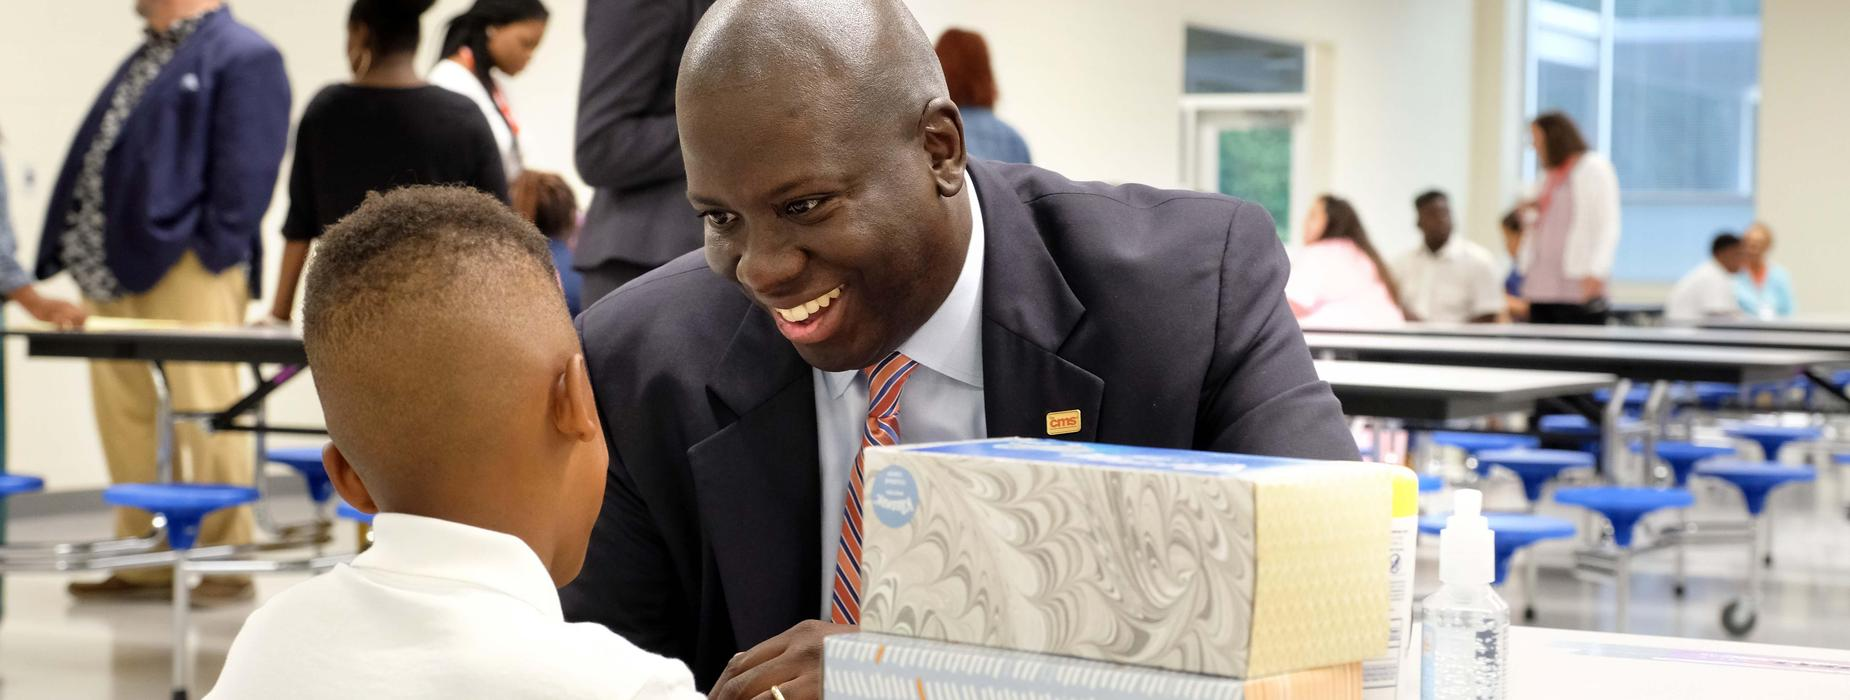 Superintendent Earnest Winston greets a student